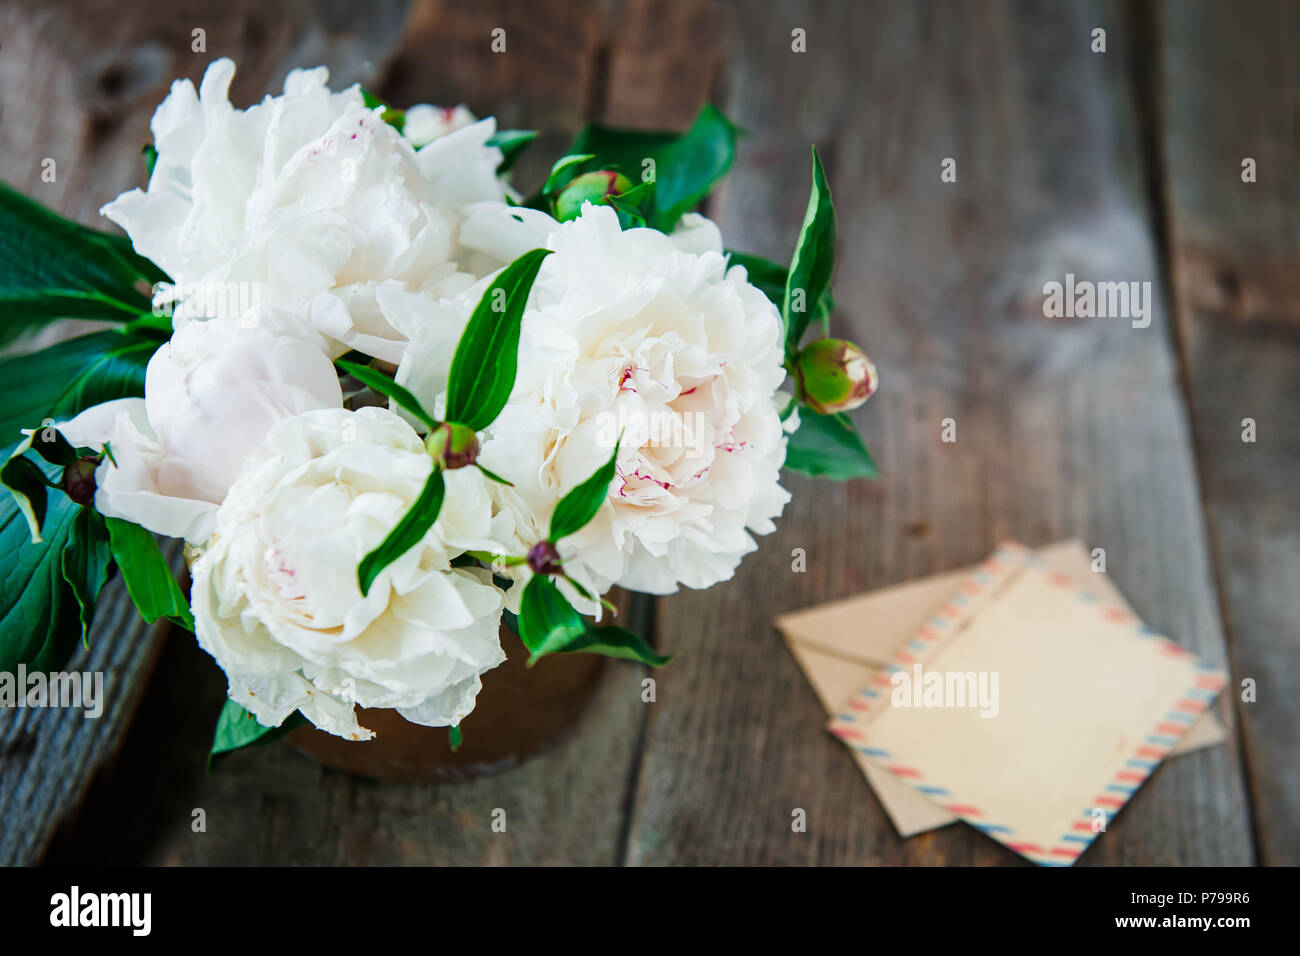 Top view white peony flowers bouquet blank greeting card and craft top view white peony flowers bouquet blank greeting card and craft paper envelope on the old wooden rustic table background postcard mock up creati izmirmasajfo